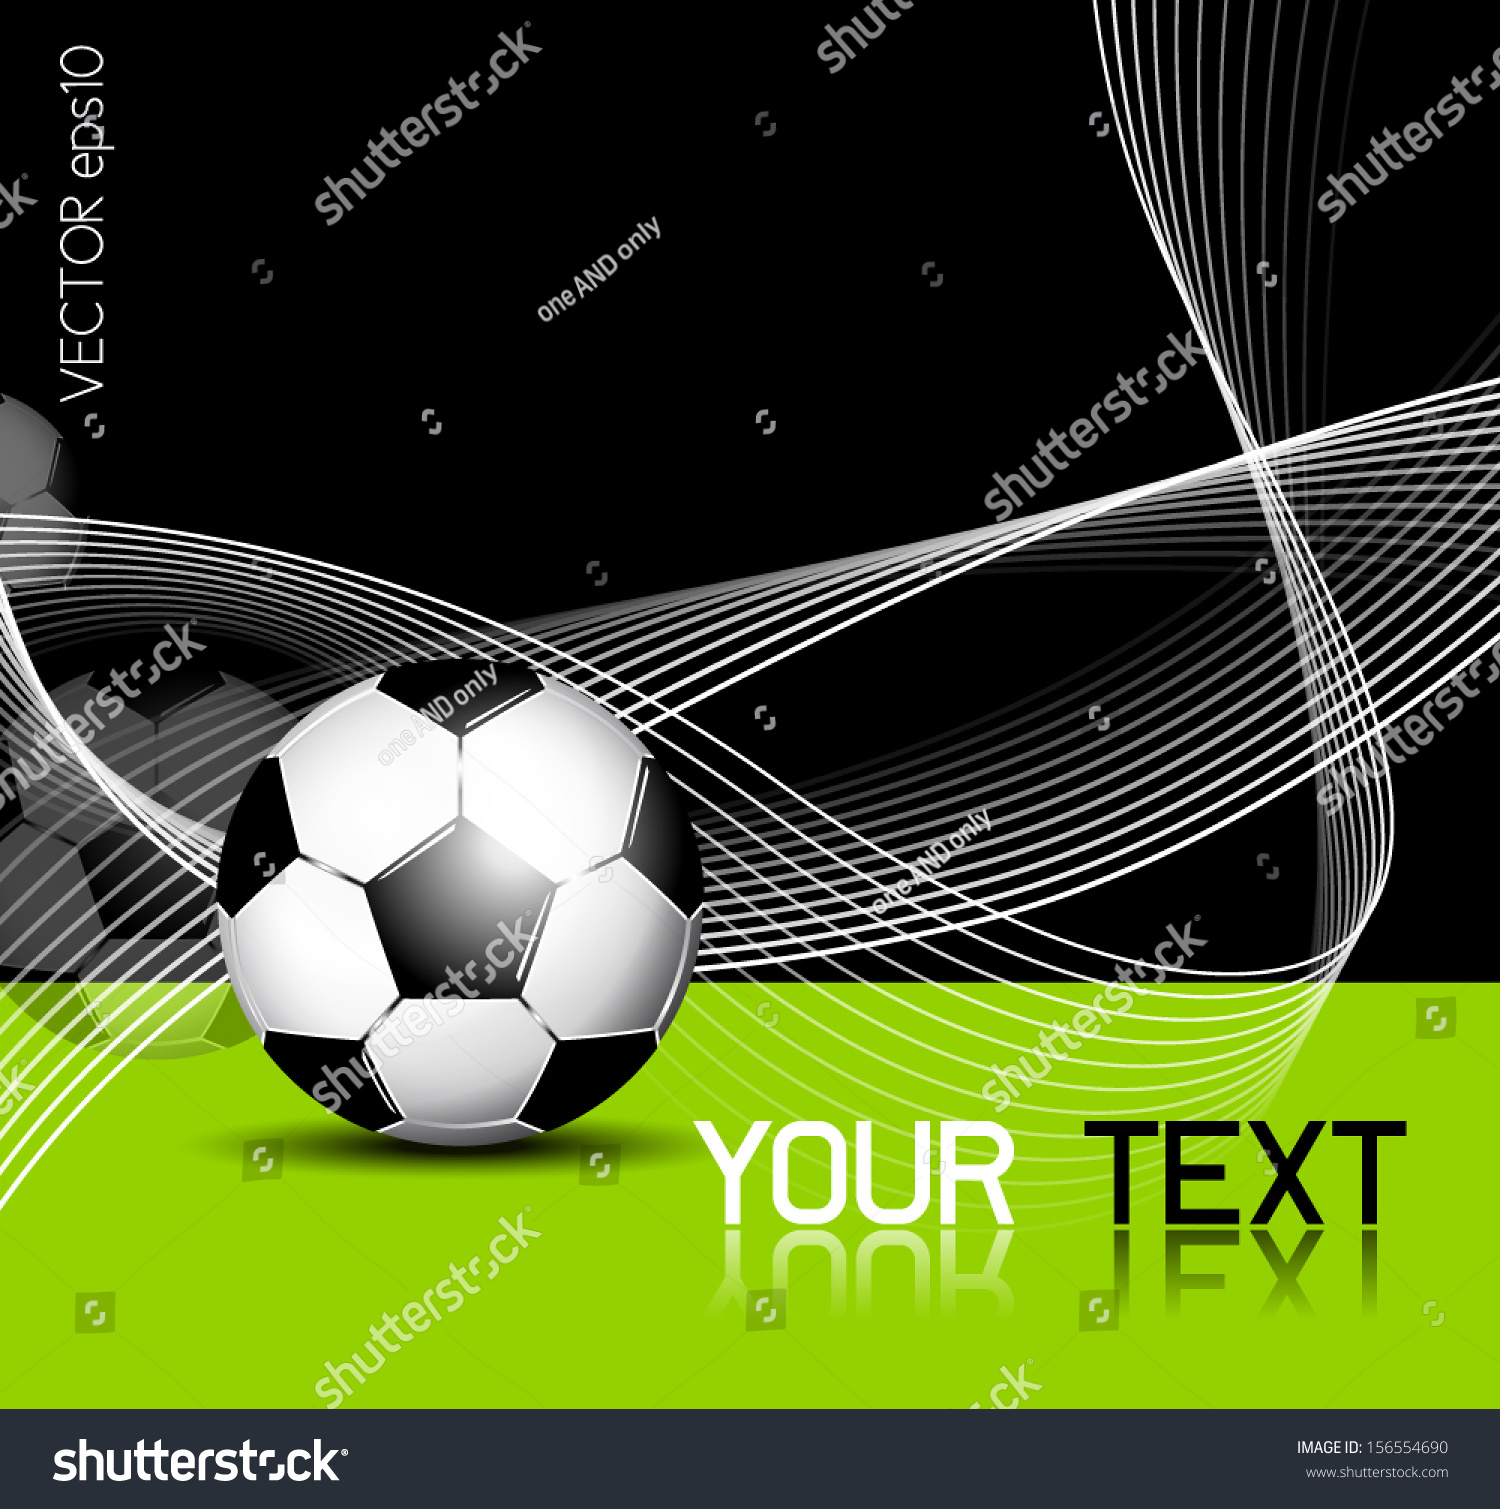 soccer ball background abstract lines football のベクター画像素材